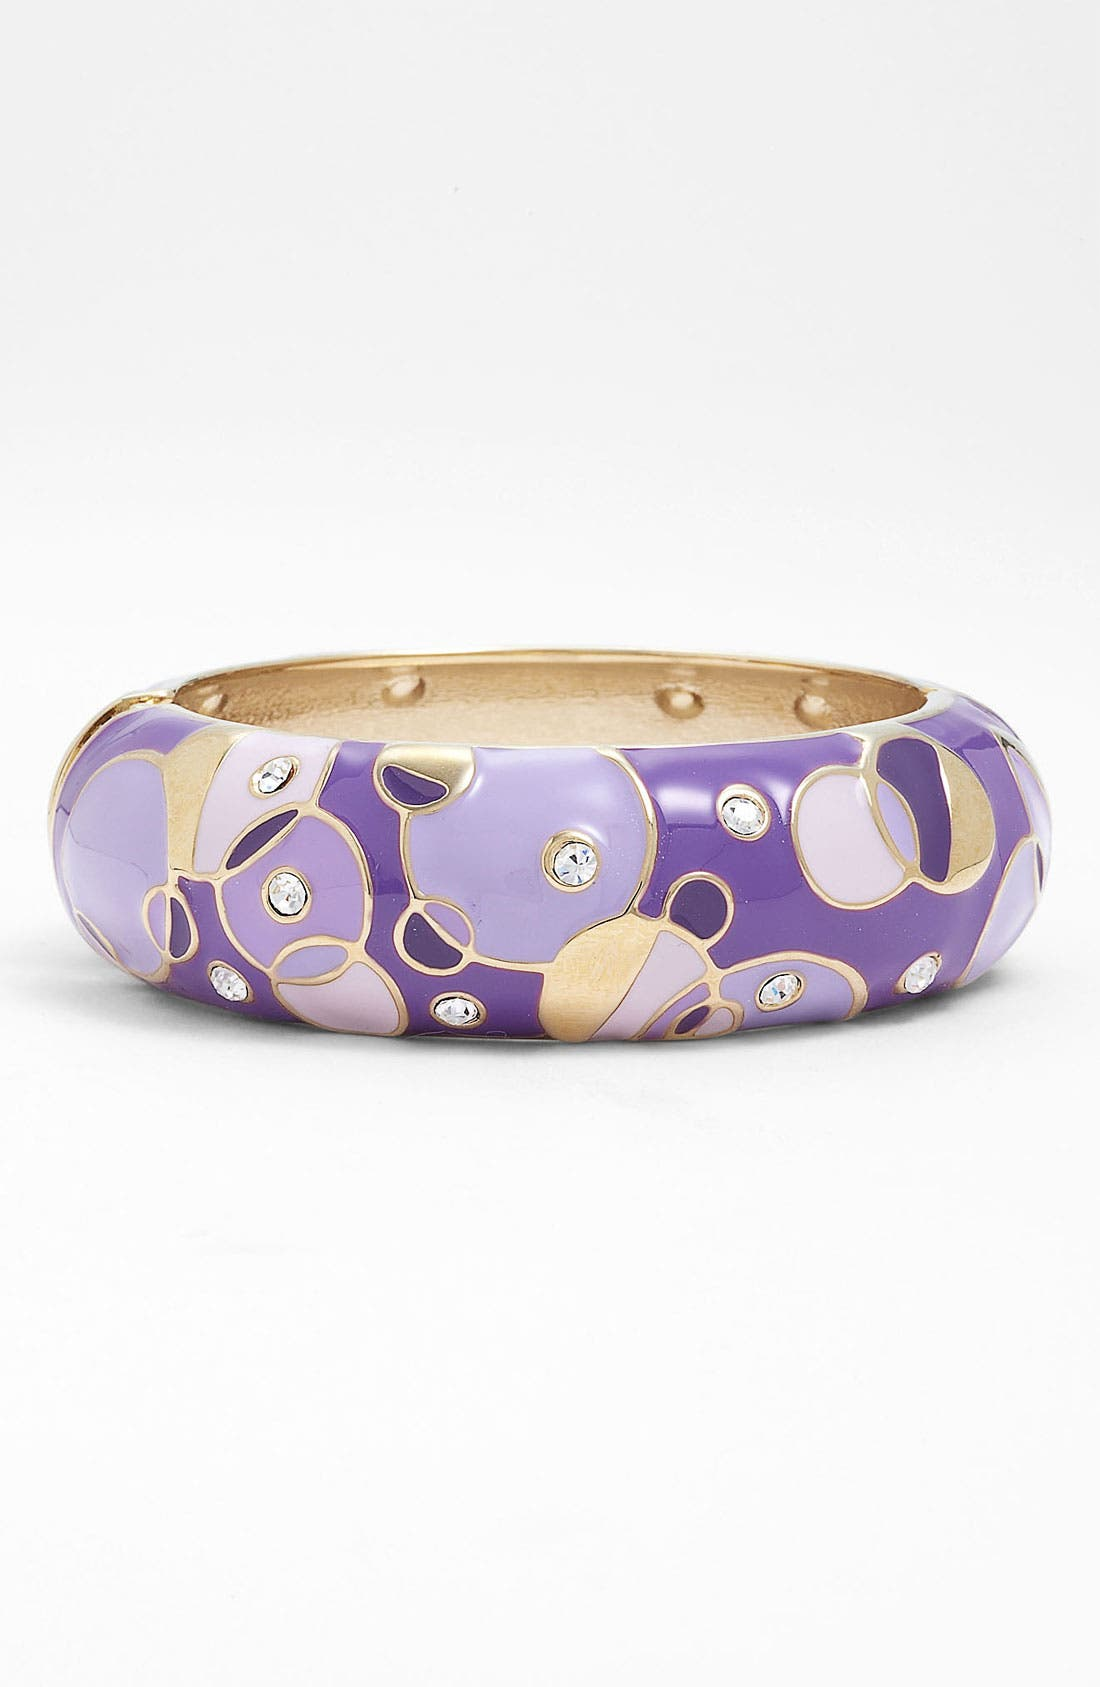 Alternate Image 1 Selected - Sequin 'Kandinsky' Large Enamel Bangle